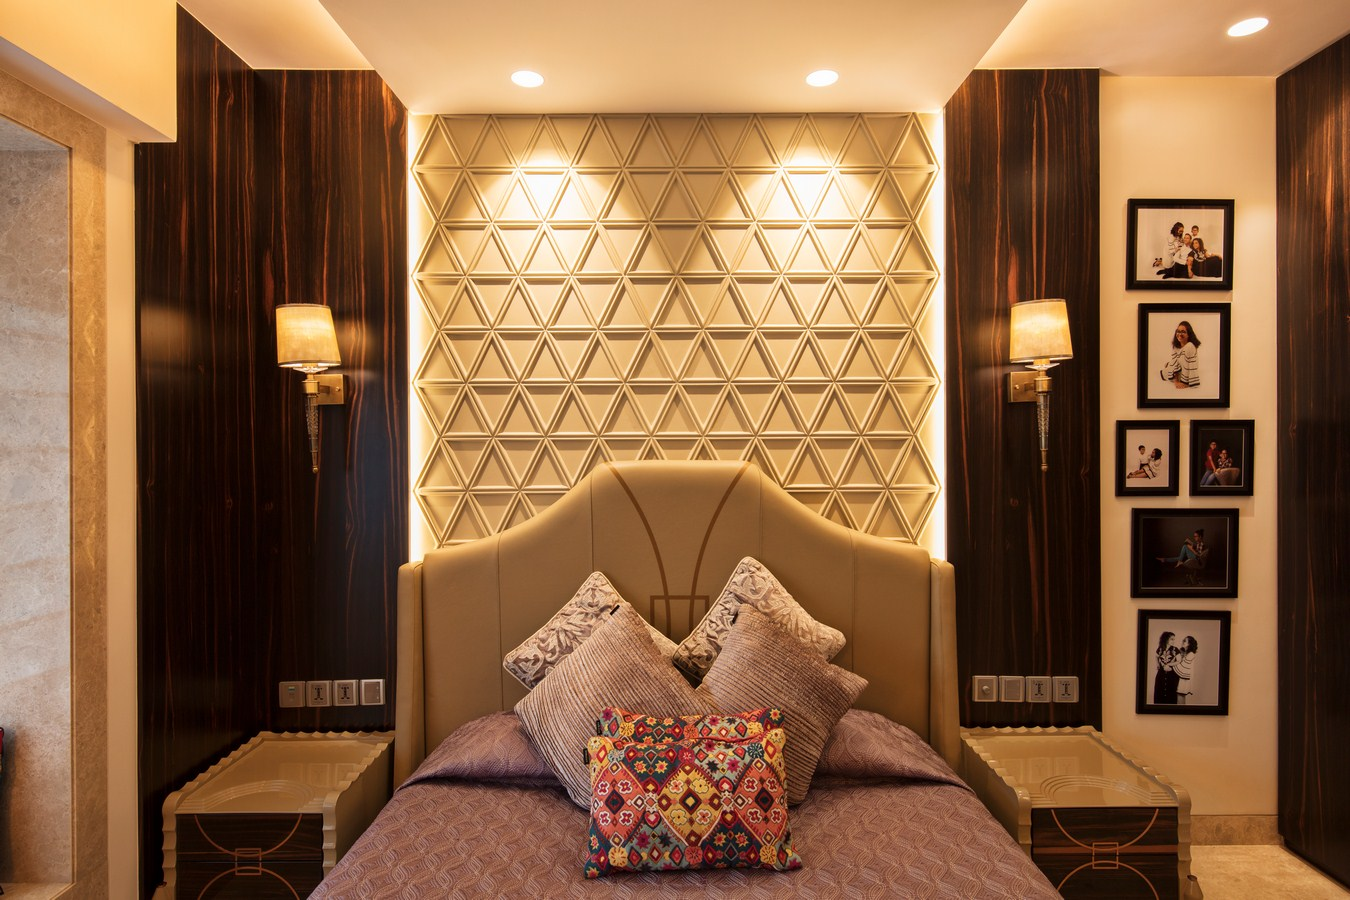 Residence Interiors By Rupandeshah Associates - Sheet2